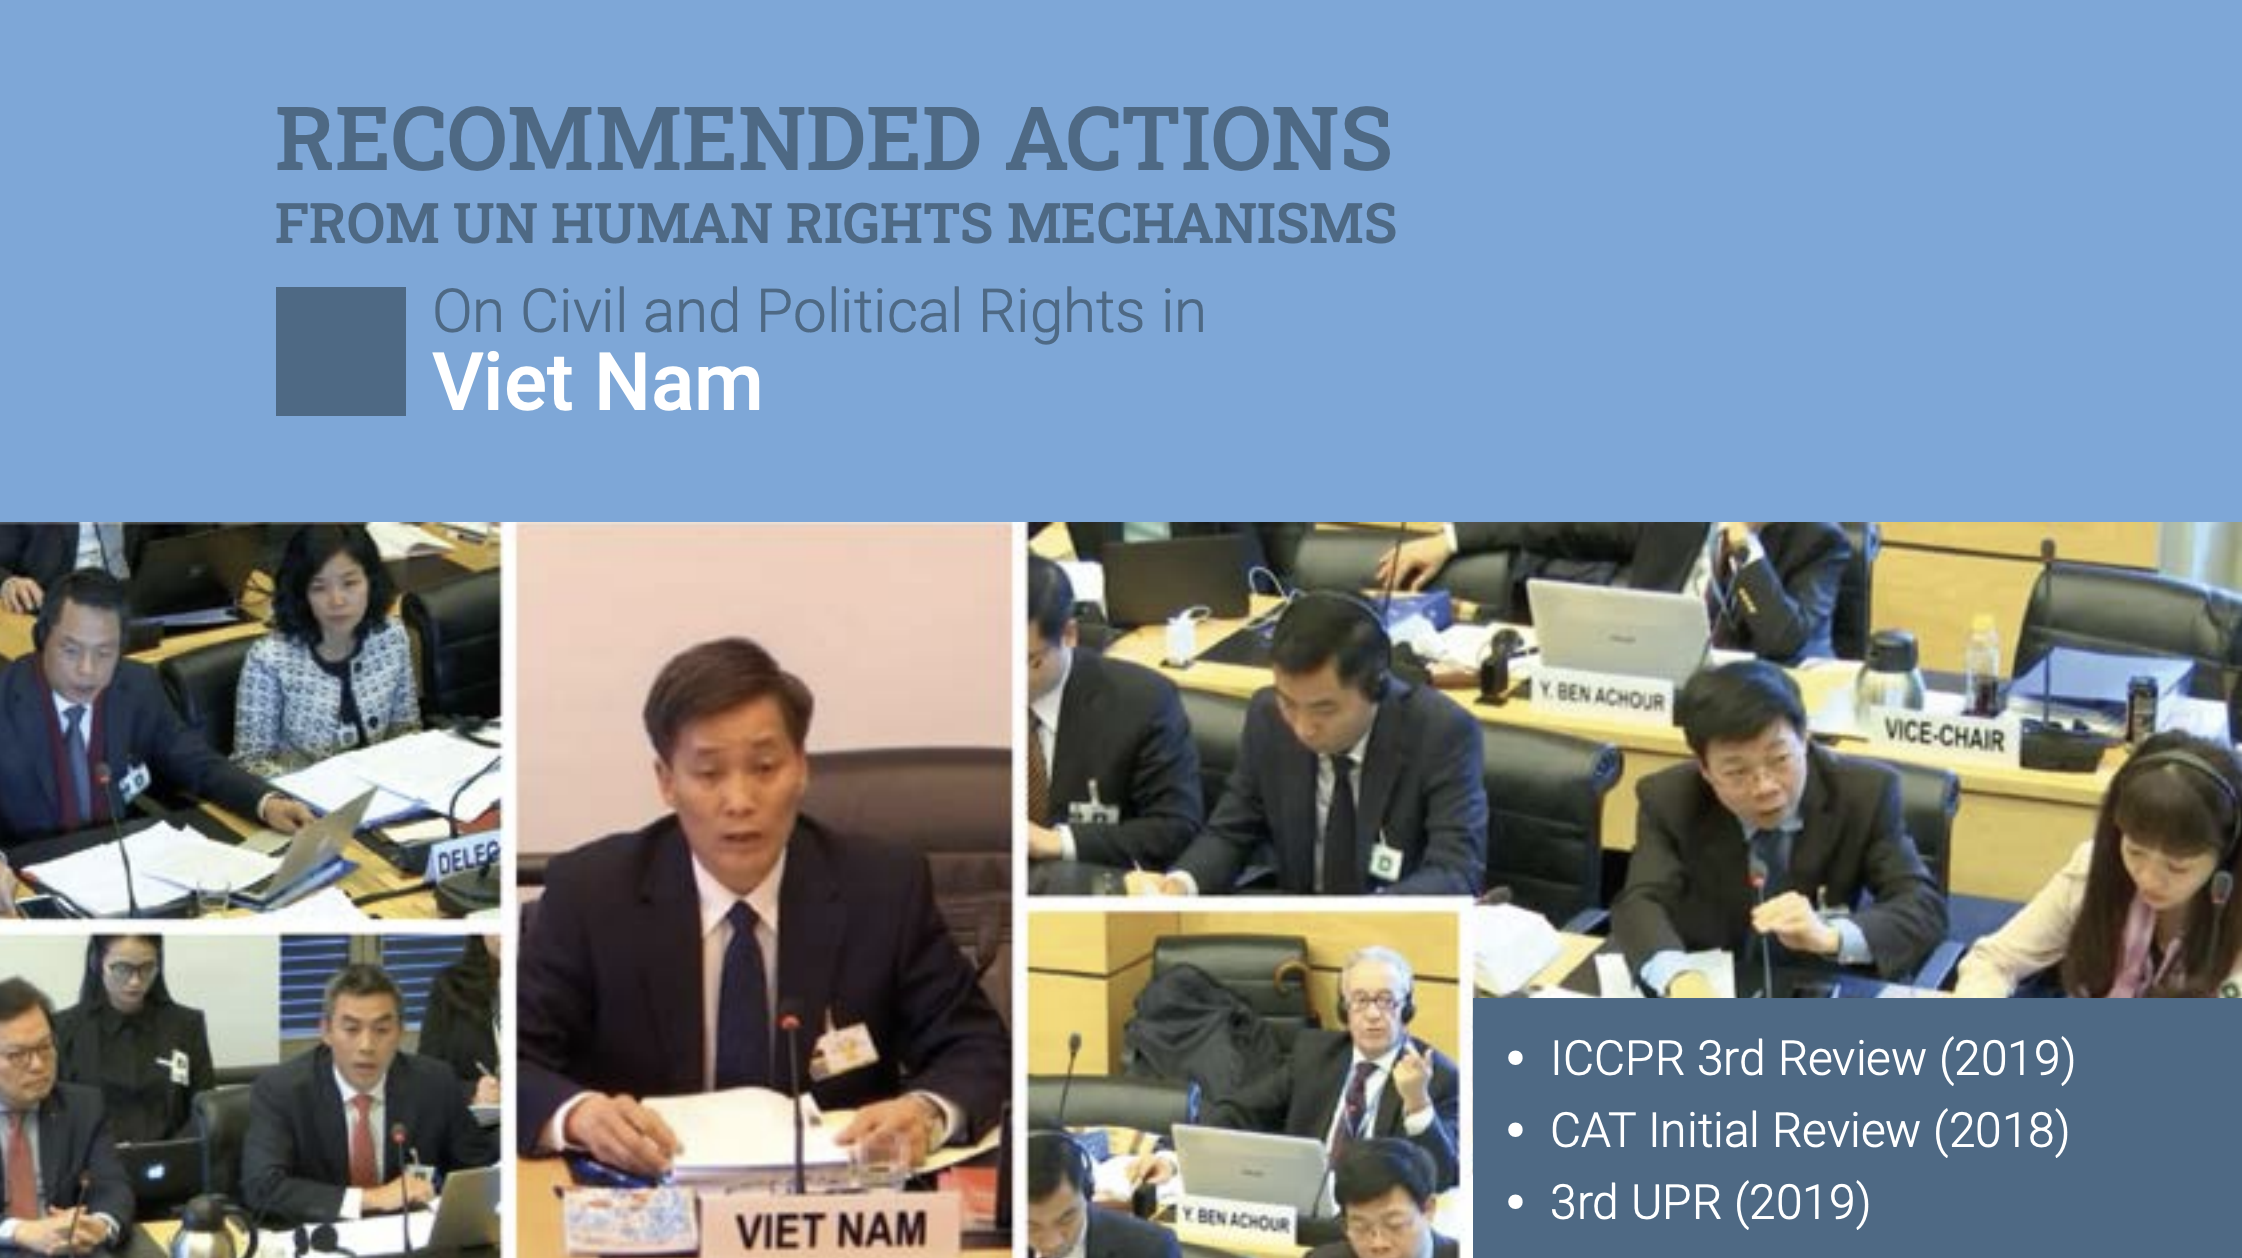 Viet Nam: Recommended Actions from UN HR Mechanisms on Civil and Political Rights